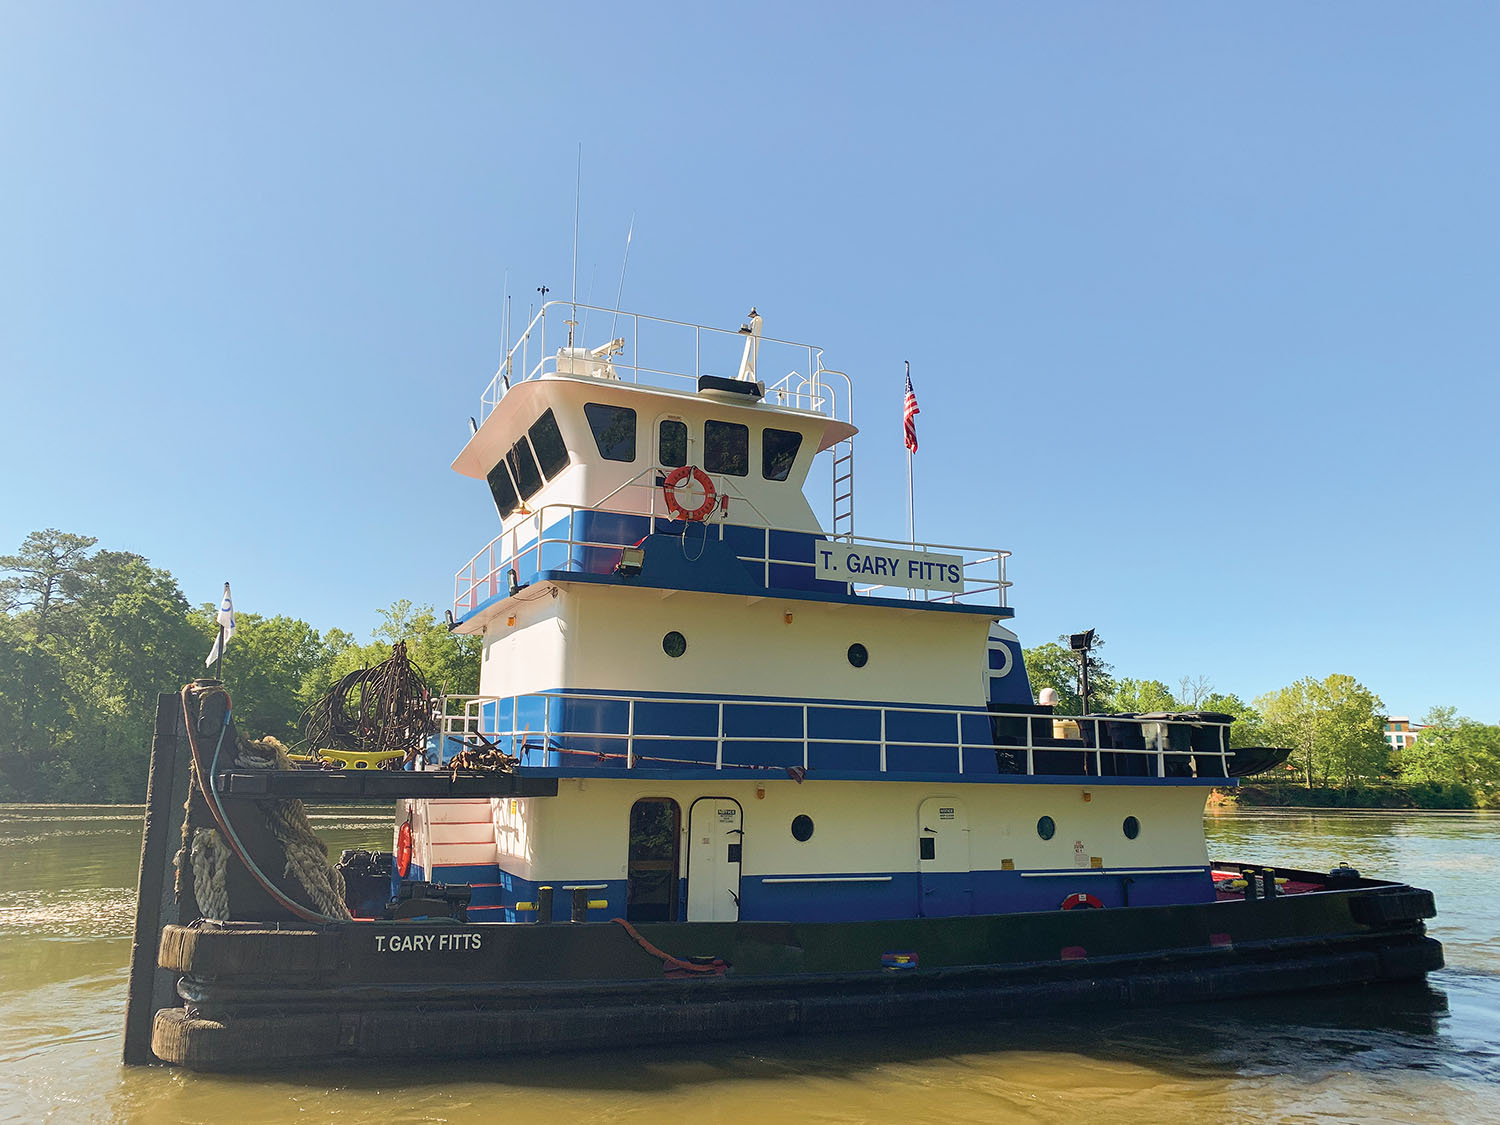 The mv. T. Gary Fitts was originally named Daphne Renee and later L.W. Nelson. Parker Towing Company renamed it in honor of the owner of the company's longtime insurance broker.